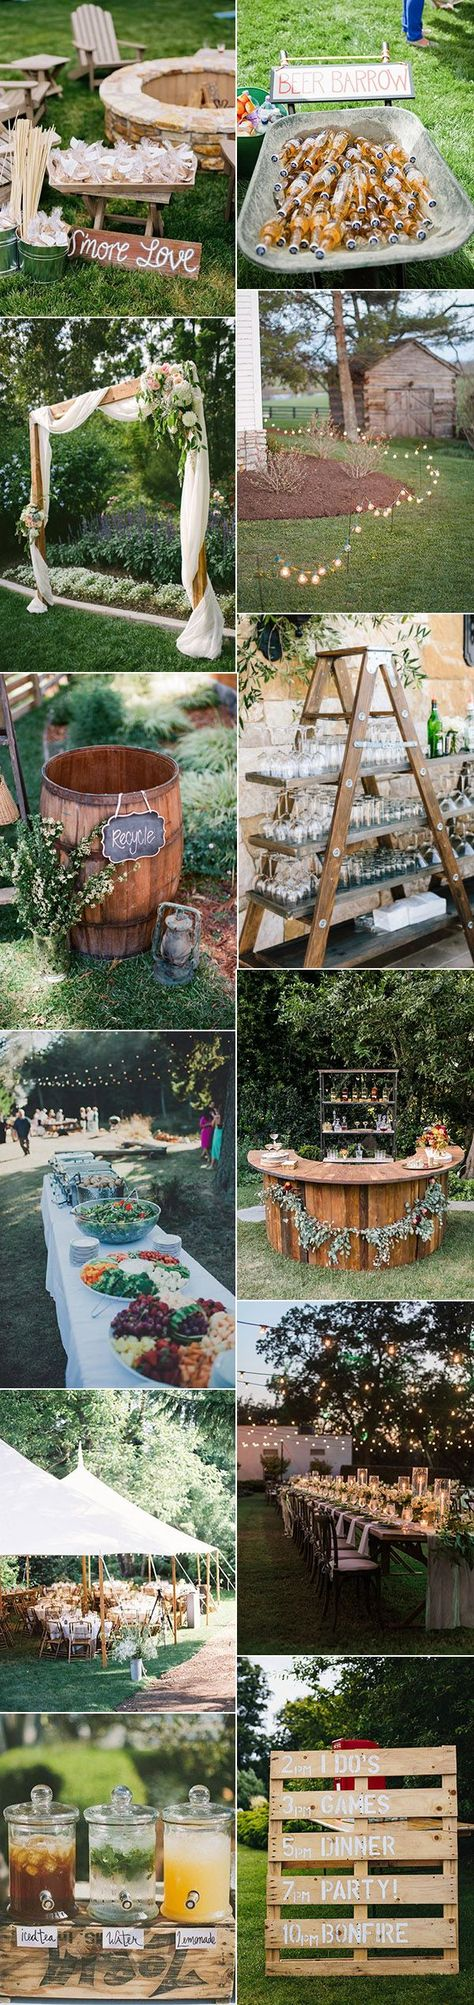 20 great backyard wedding ideas that inspire mariages deco fete